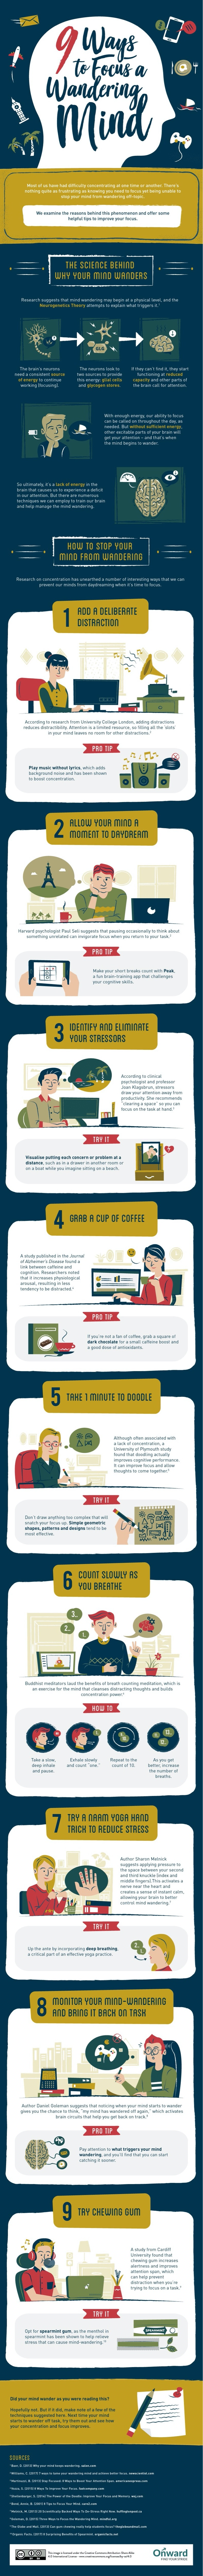 Proven ways to focus wandering mind - full infographic